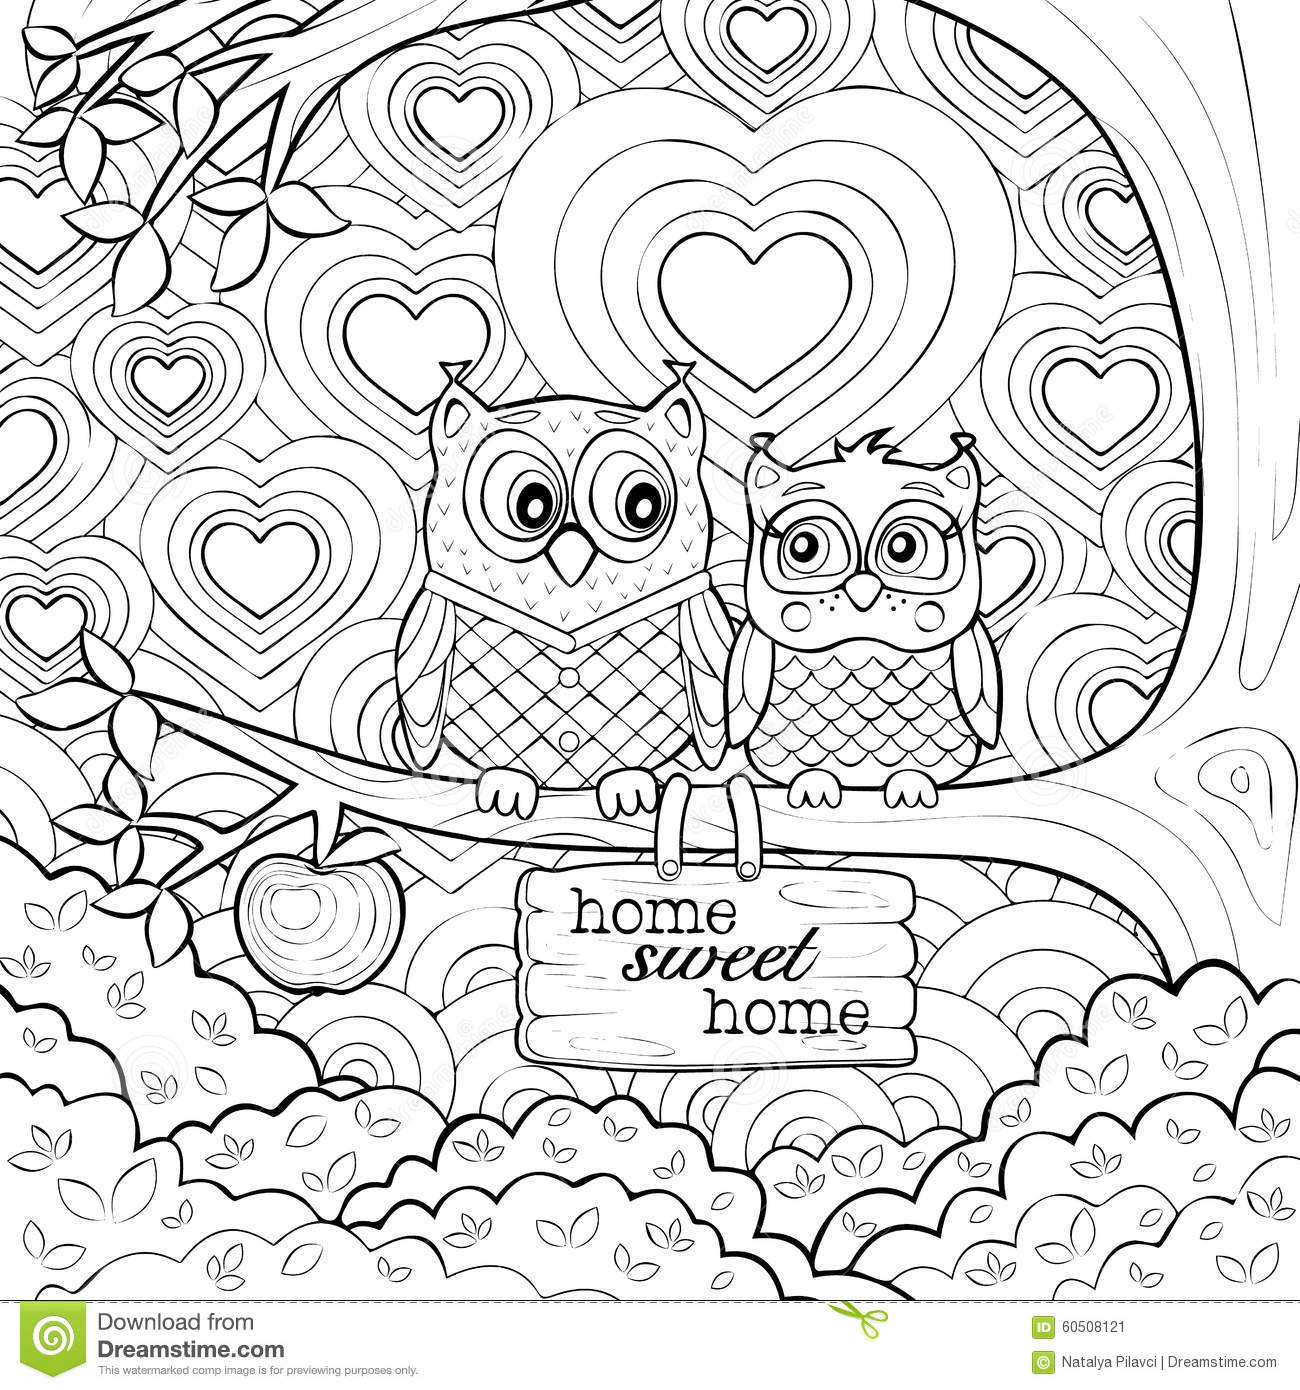 art pages to color monster coloring pages doodle art alley art pages color to